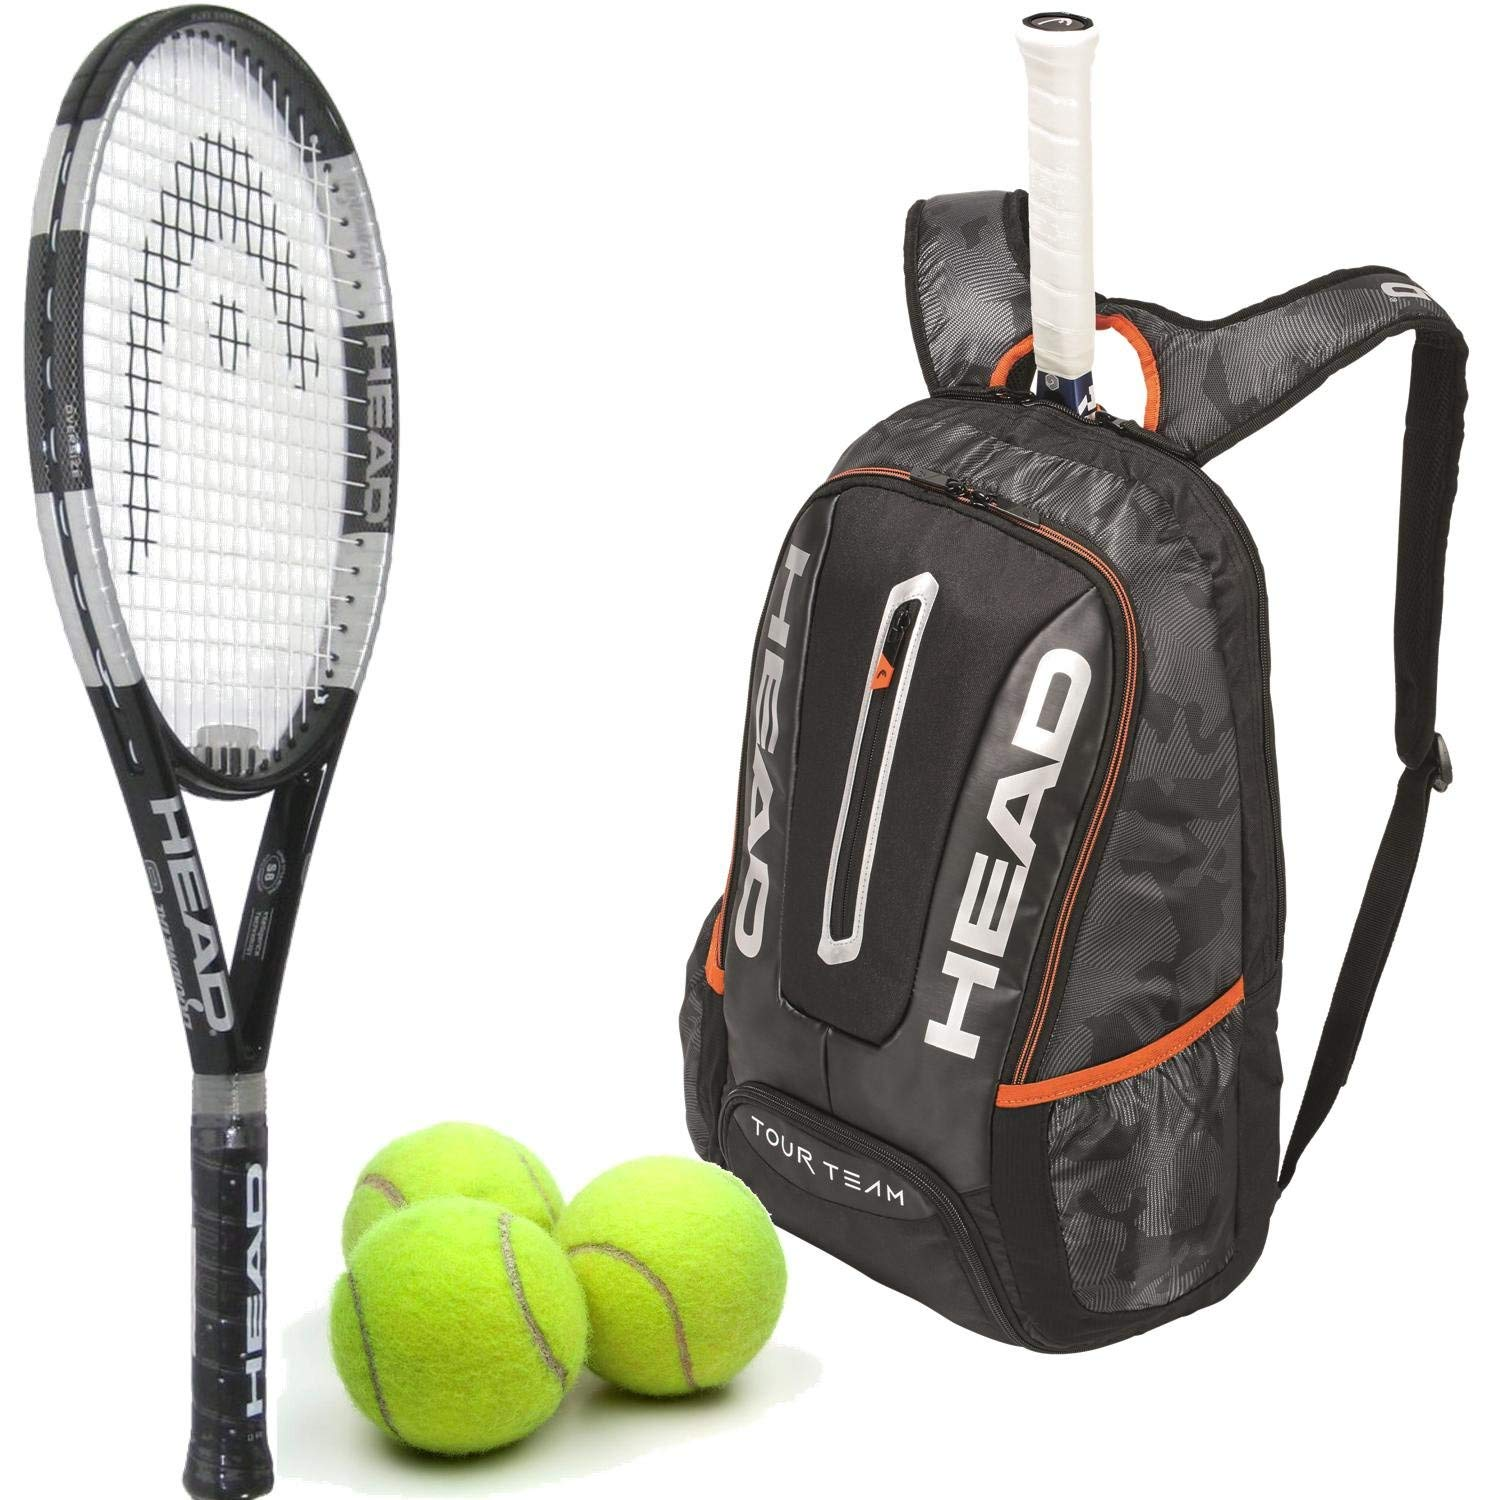 HEAD Titanium Ti S6 Extended//Oversized 16x19 Tennis Racquet Starter Set or Kit Starter Set or Kit Bundled with a Tour Team Bag and 1 Can of 3 Tennis Balls